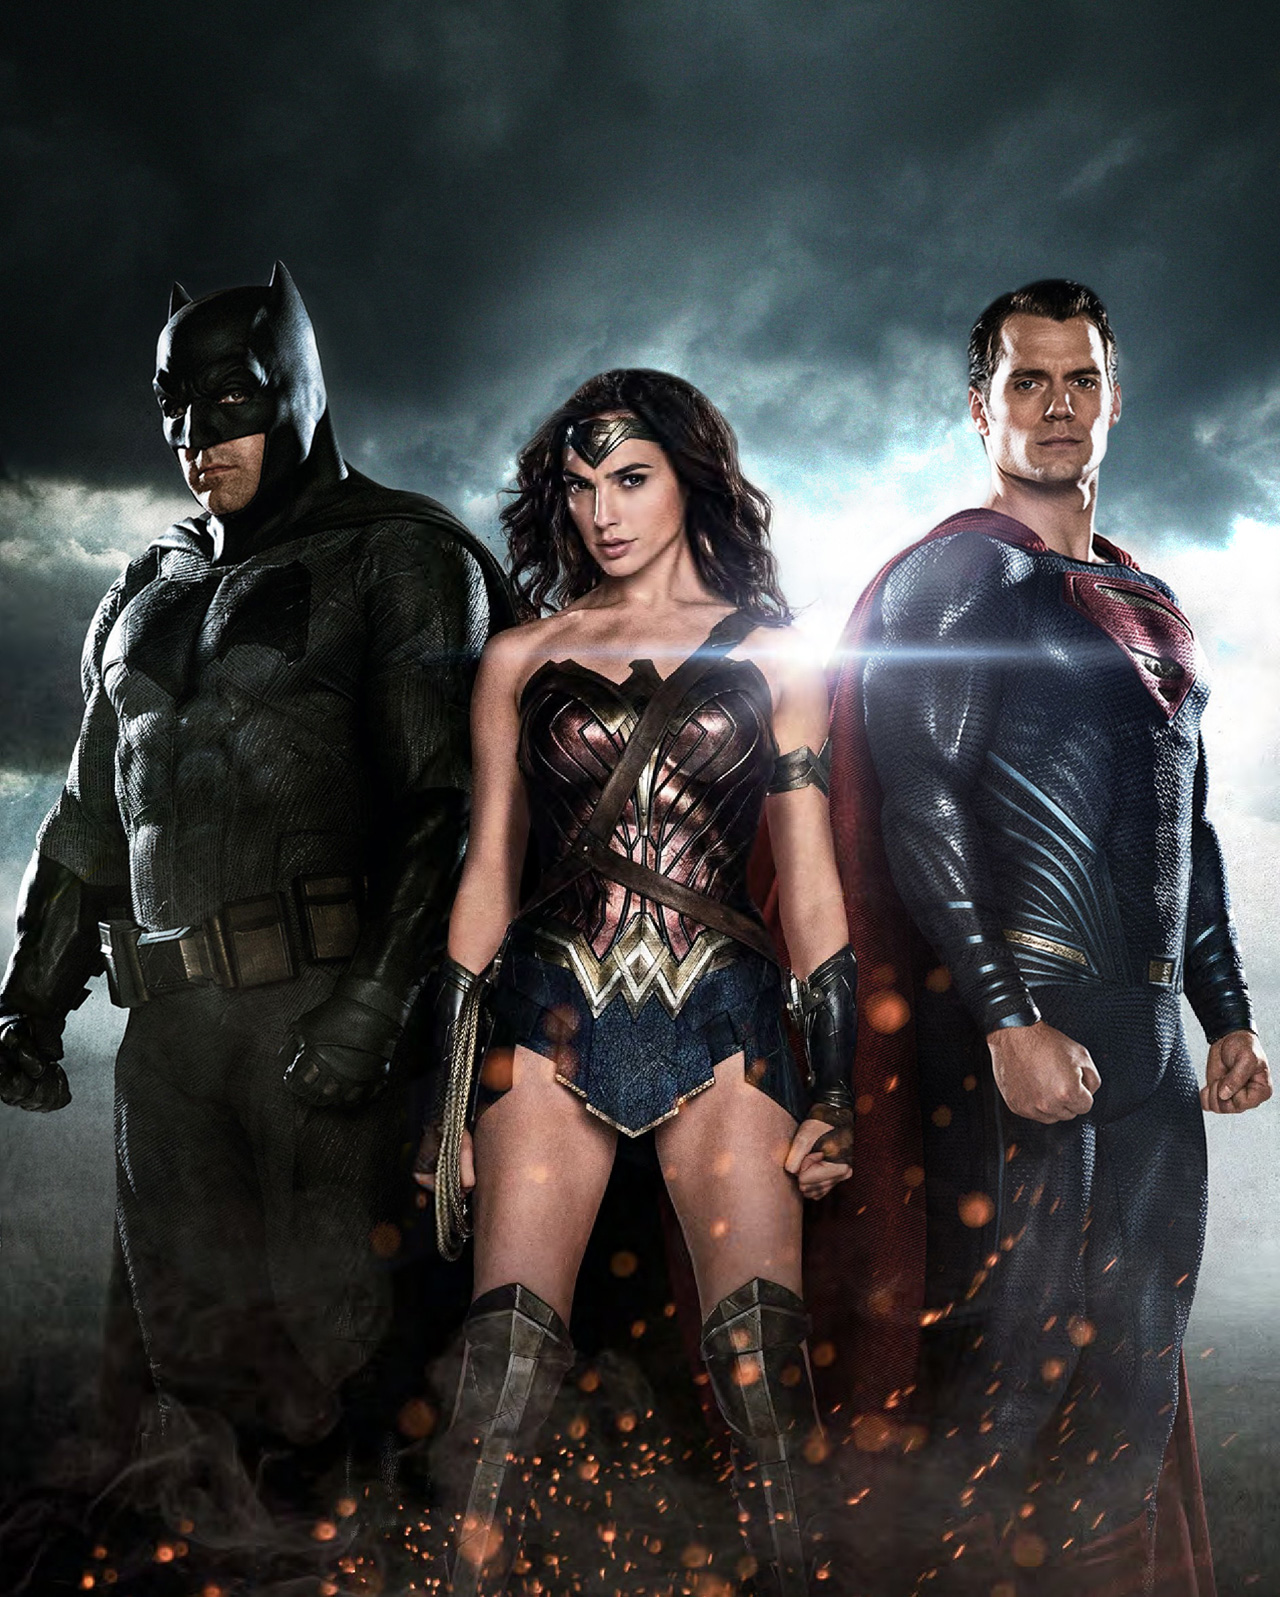 Batman vs Superman, hero, right and wrong, black and white, movie